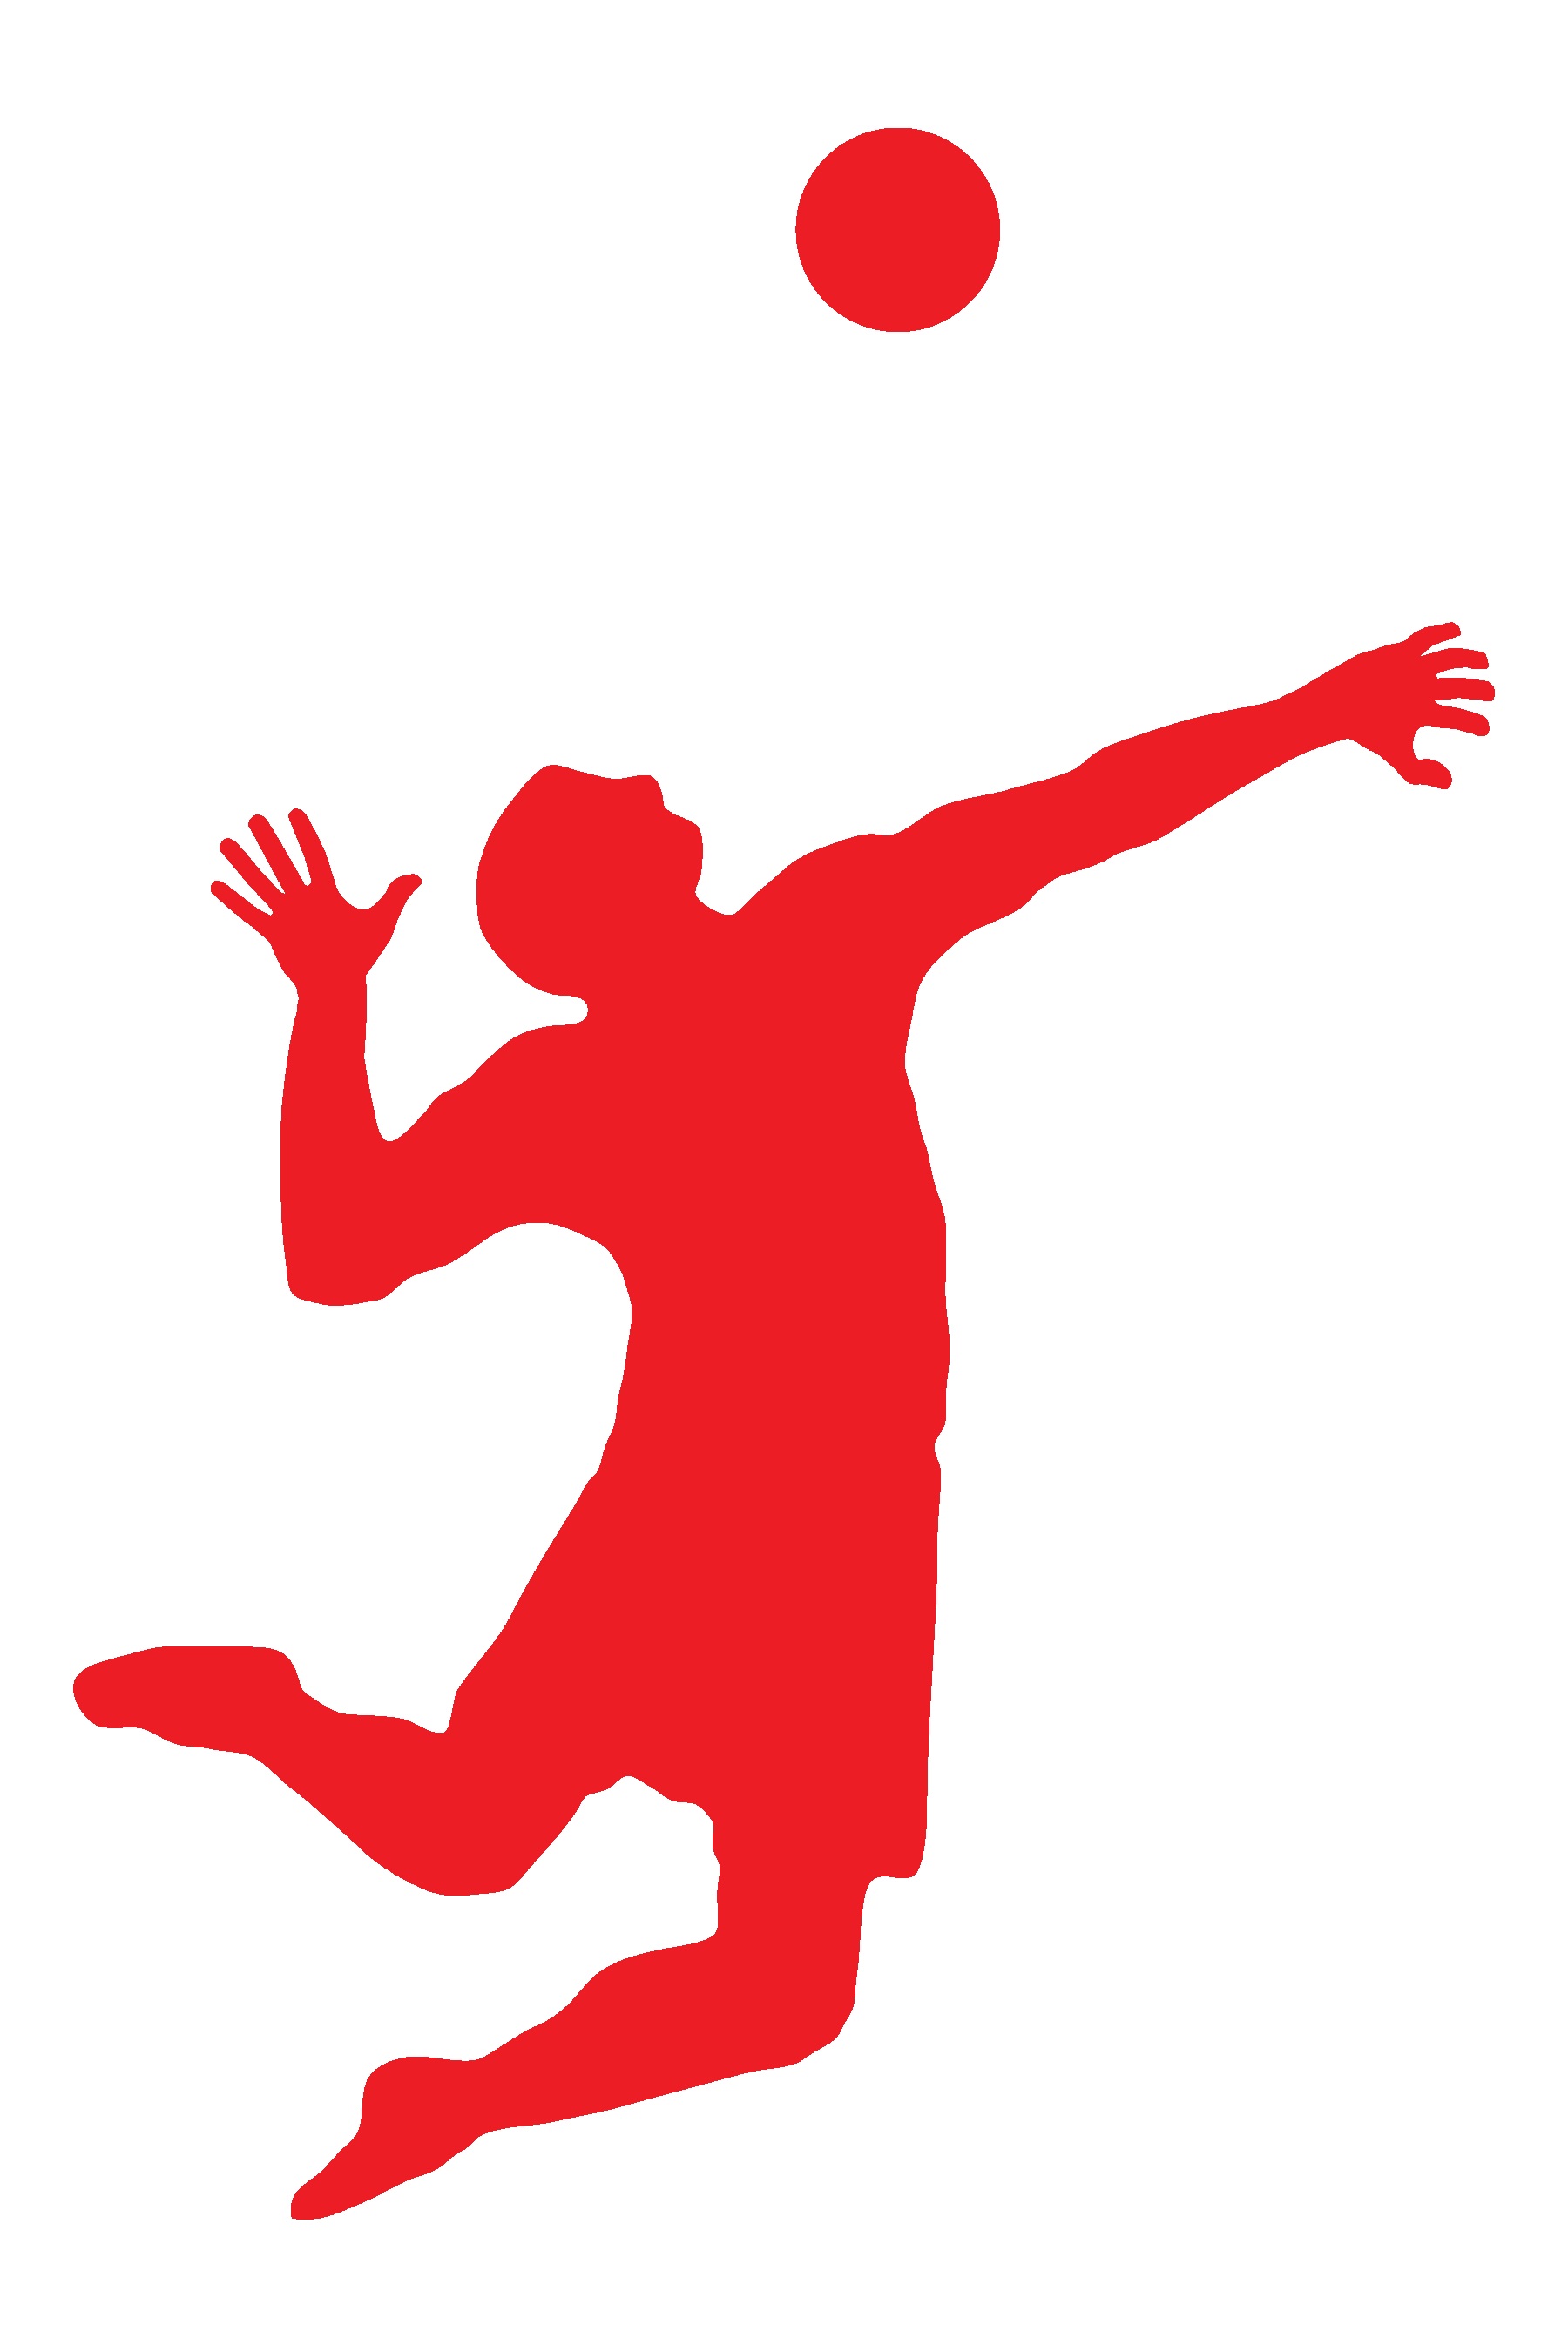 clipart volleyball red